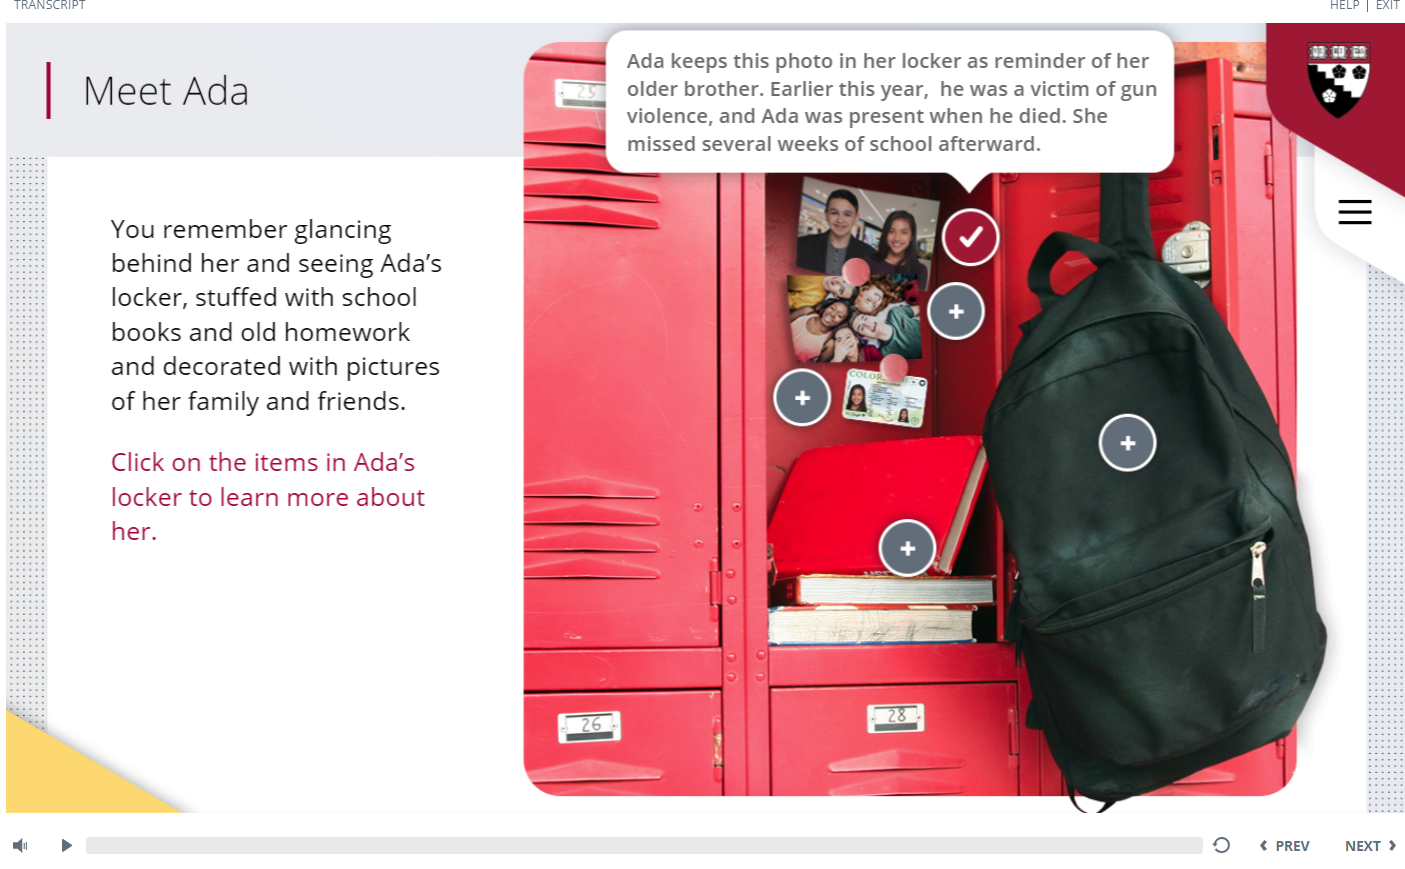 Screenshot from HGSE Educational Ethics course showing background information with items in a locker